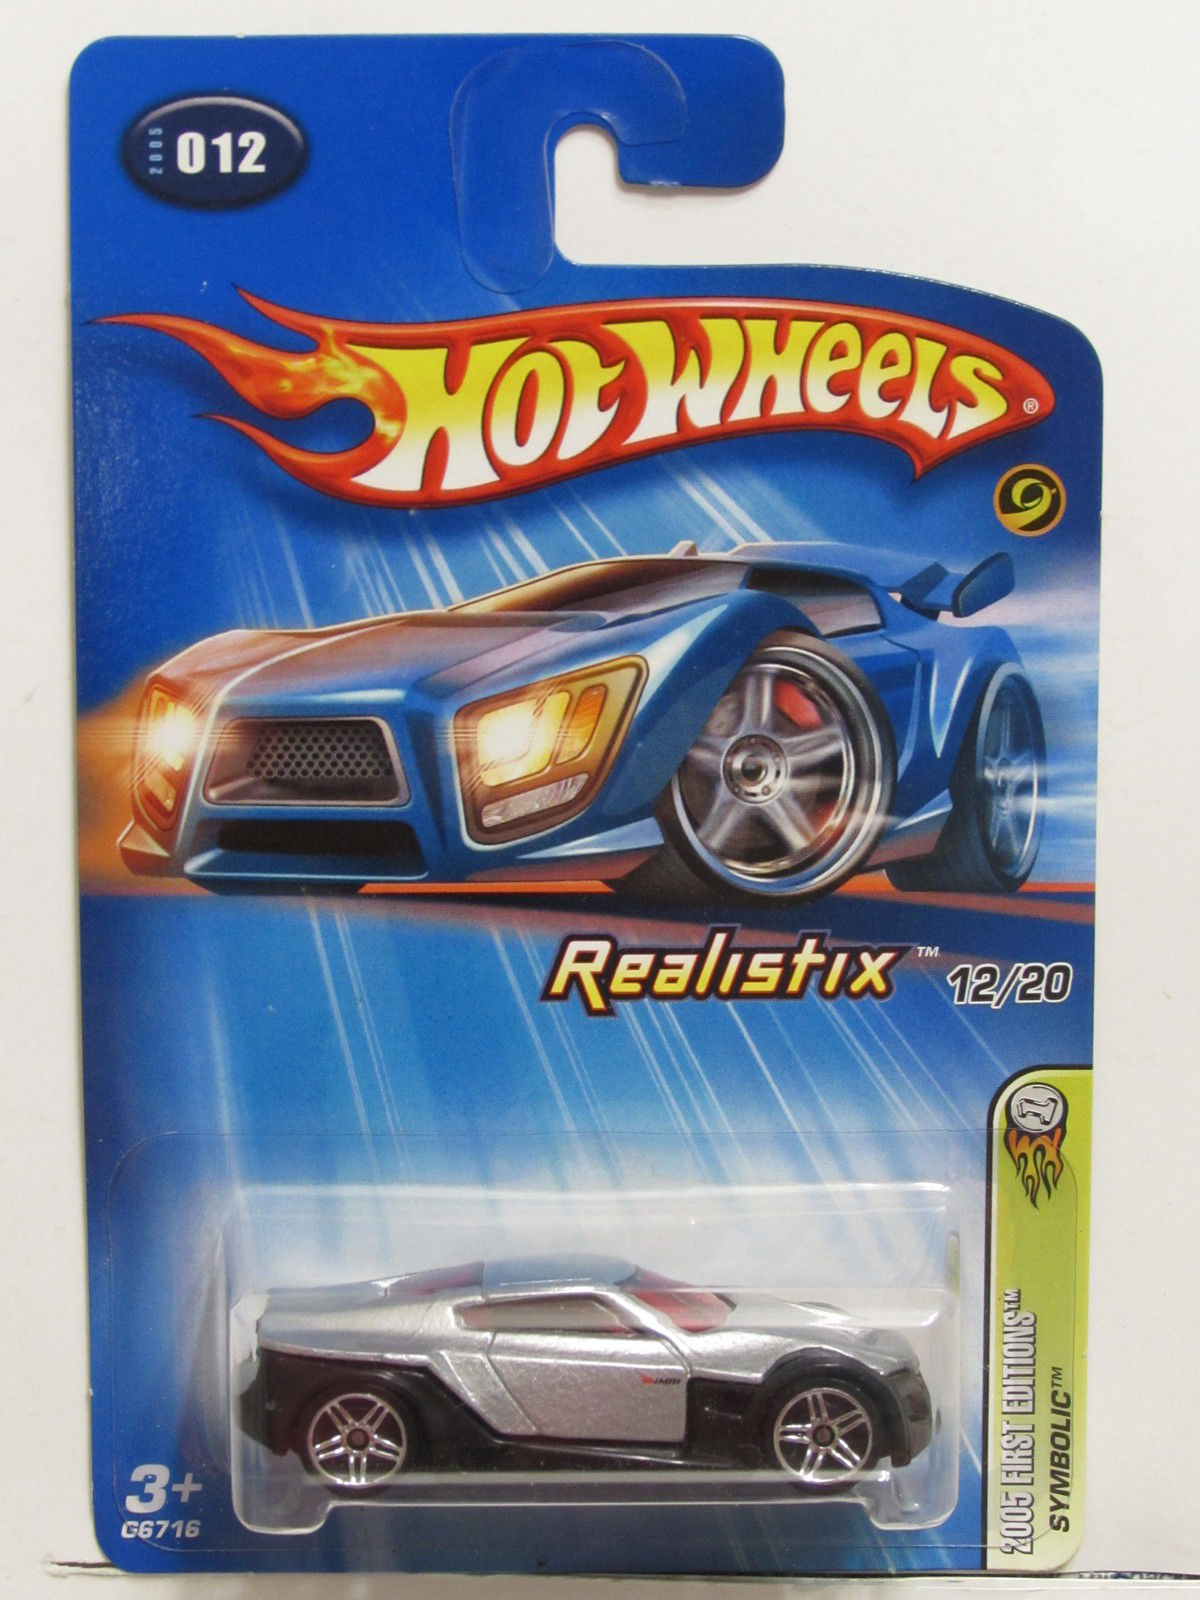 HOT WHEELS 2005 FIRST EDITIONS REALISTIX SYMBOLIC #012